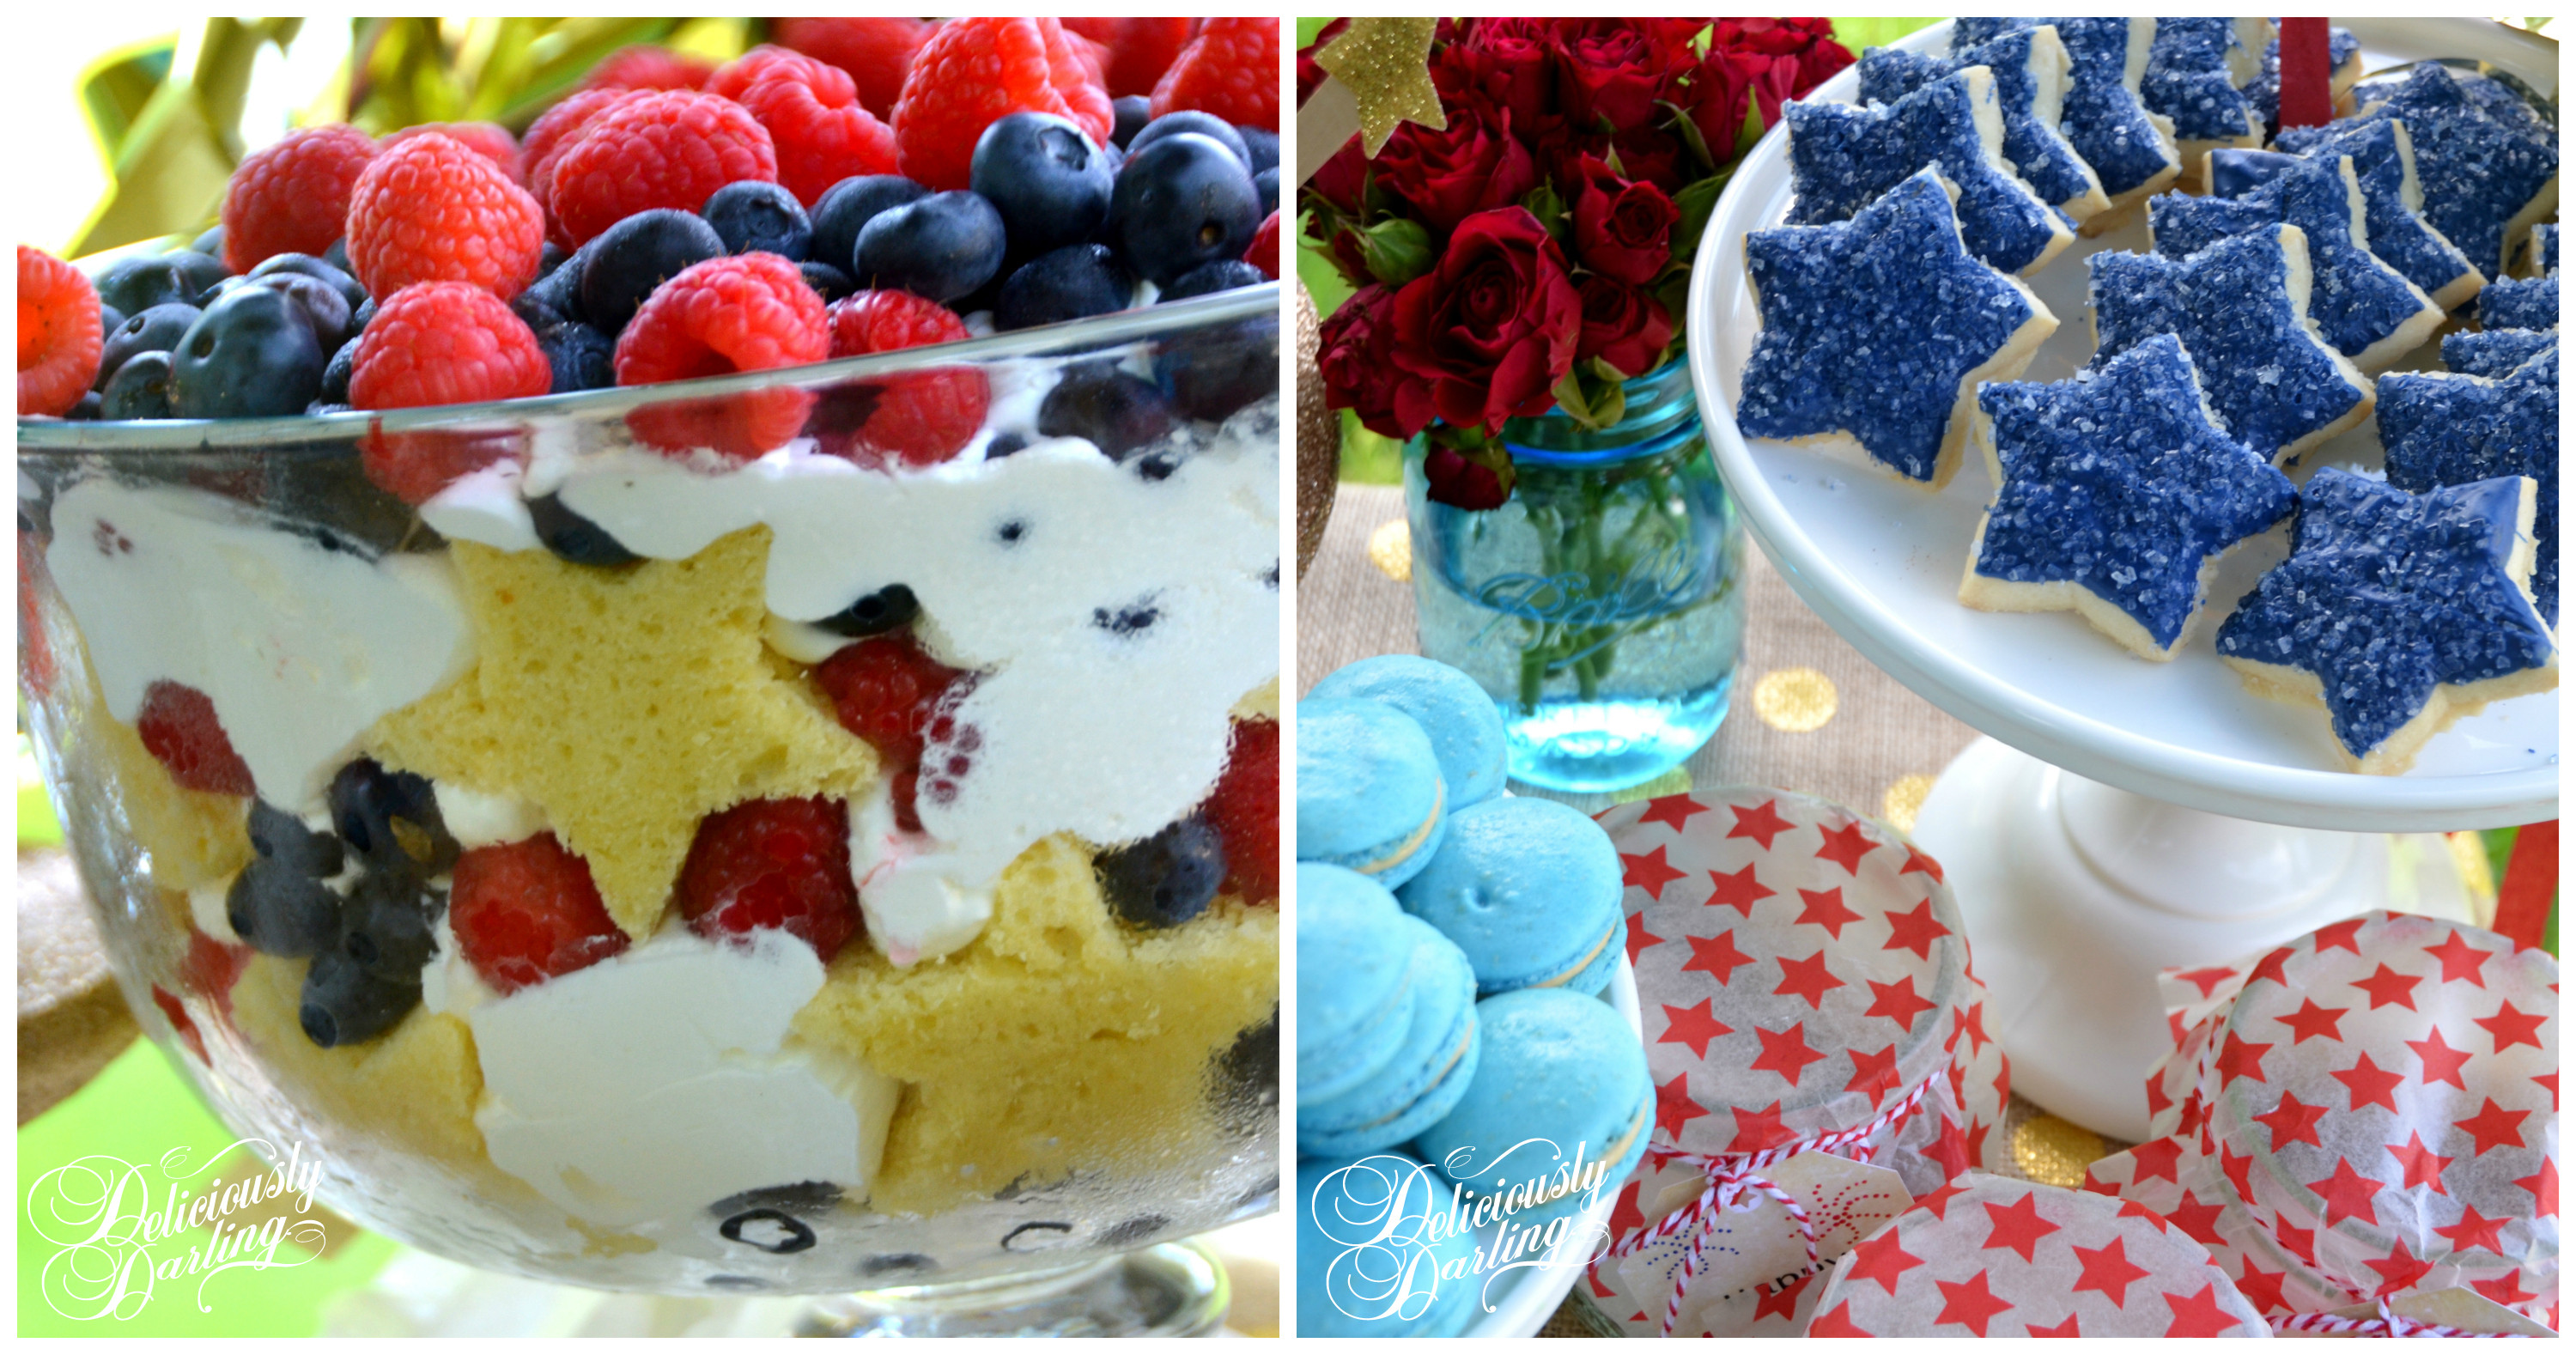 4Th Of July Dessert  4th of July Dessert Table Let Freedom Ring Deliciously